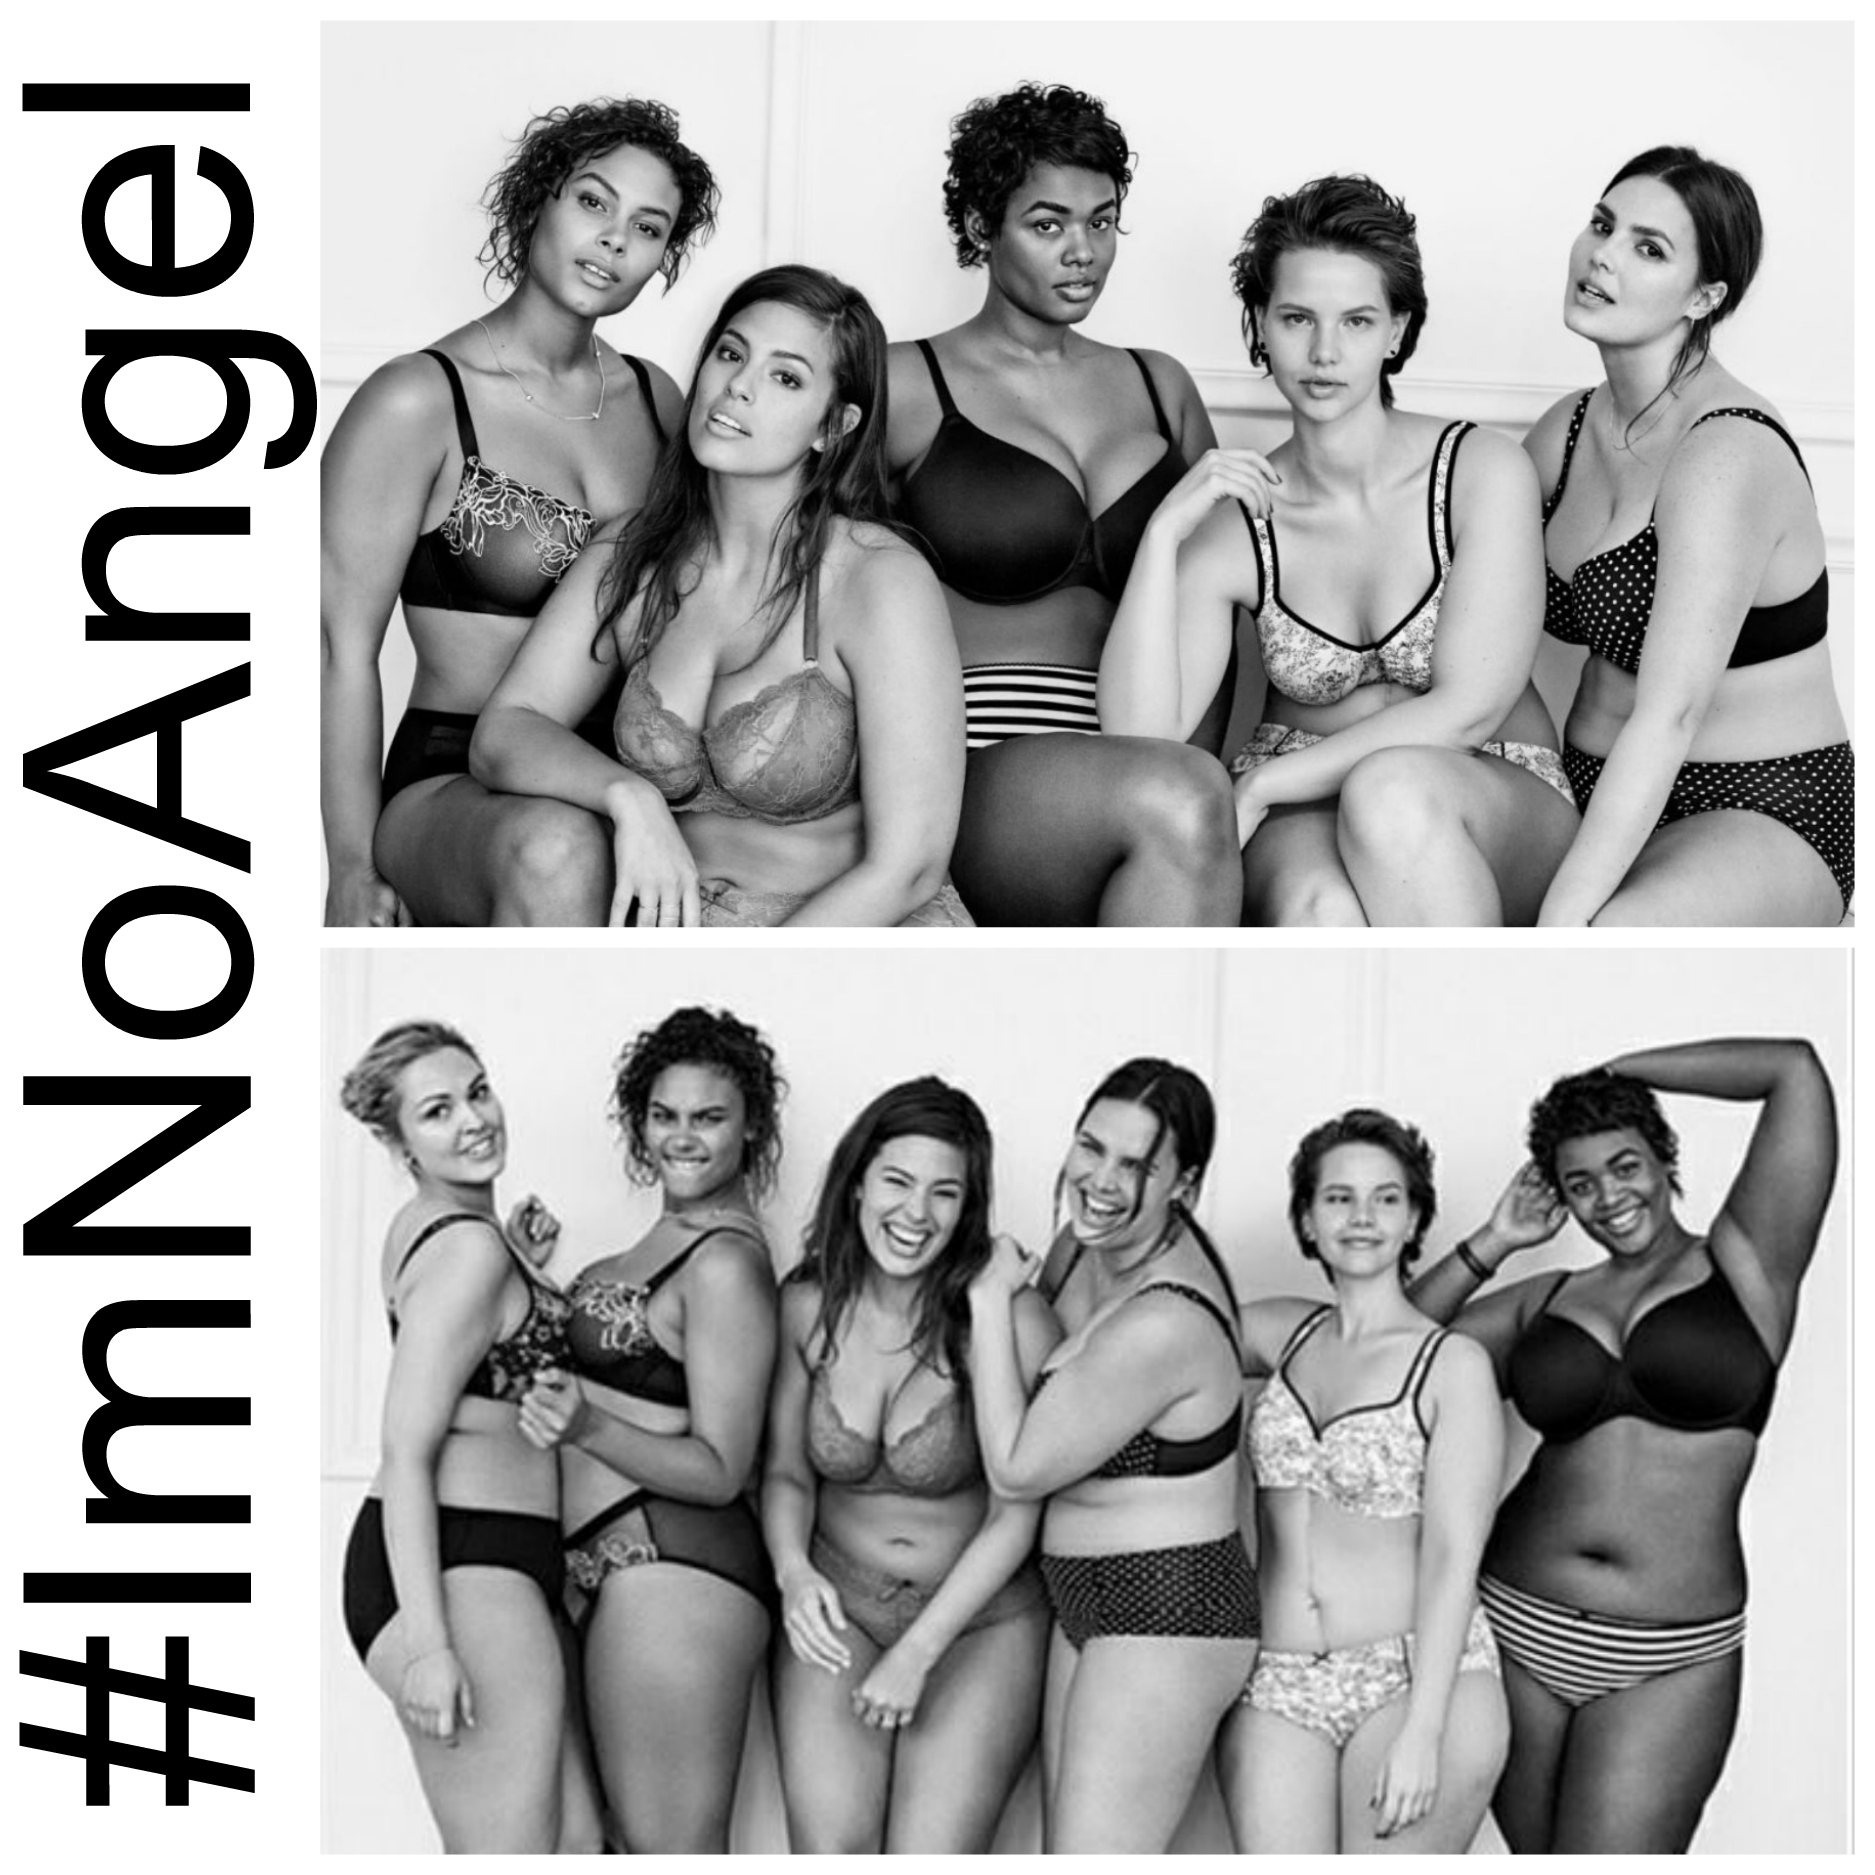 #ImNoAngel Campaign PLus Size Models Fashion Blog